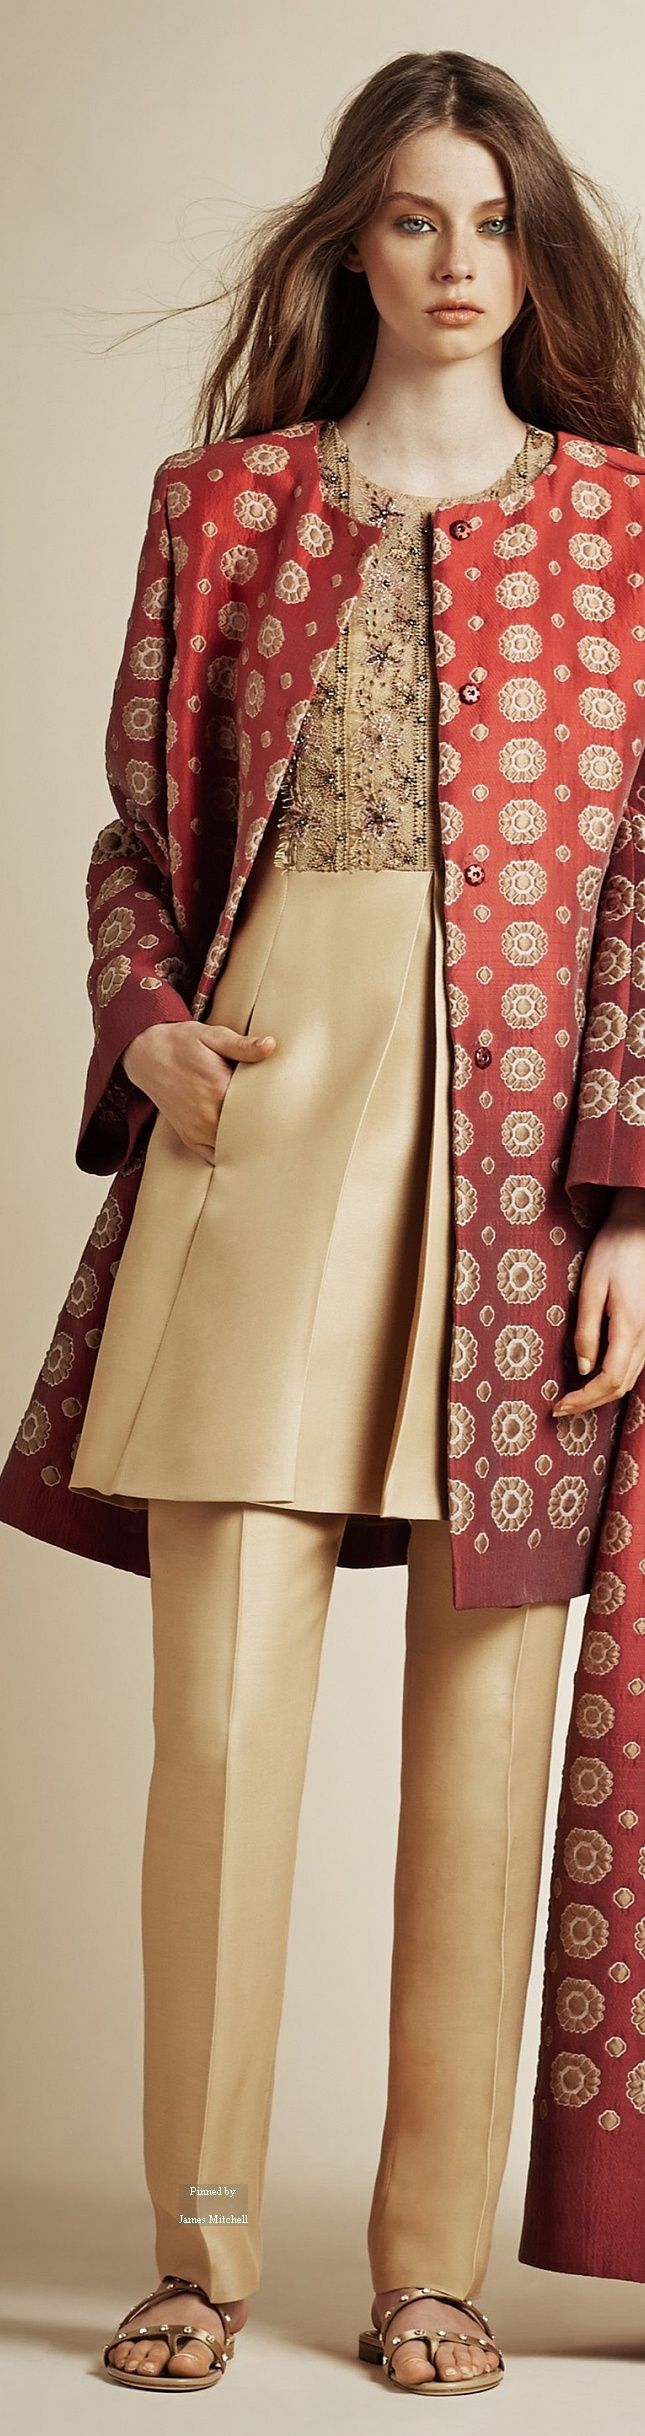 Alberta Ferretti Pre Spring 2016 collection women fashion outfit clothing style…